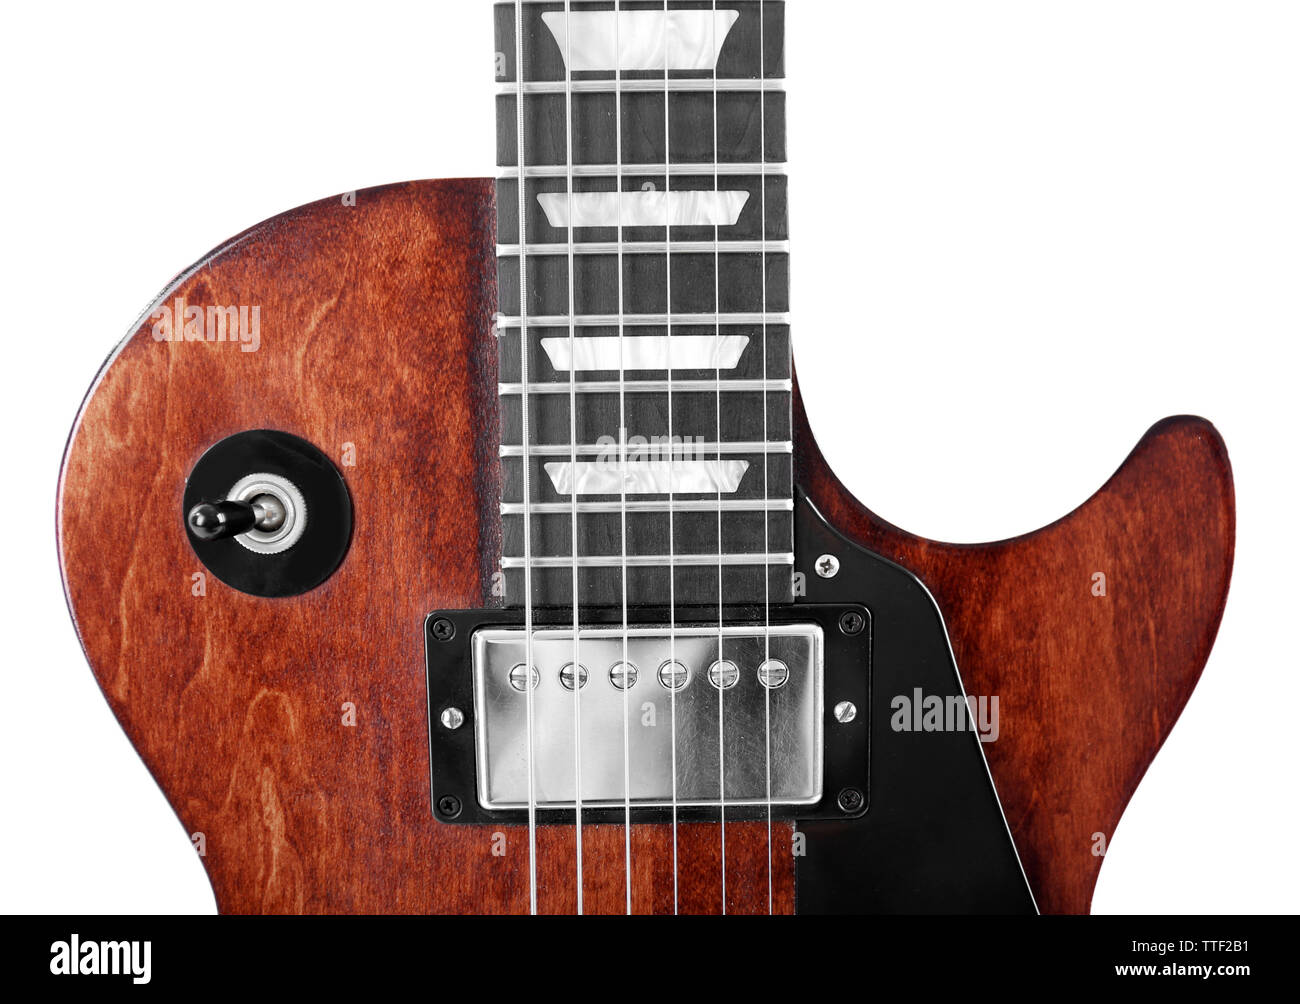 Toggle switch and neck of brown electric guitar, isolated on white - Stock Image